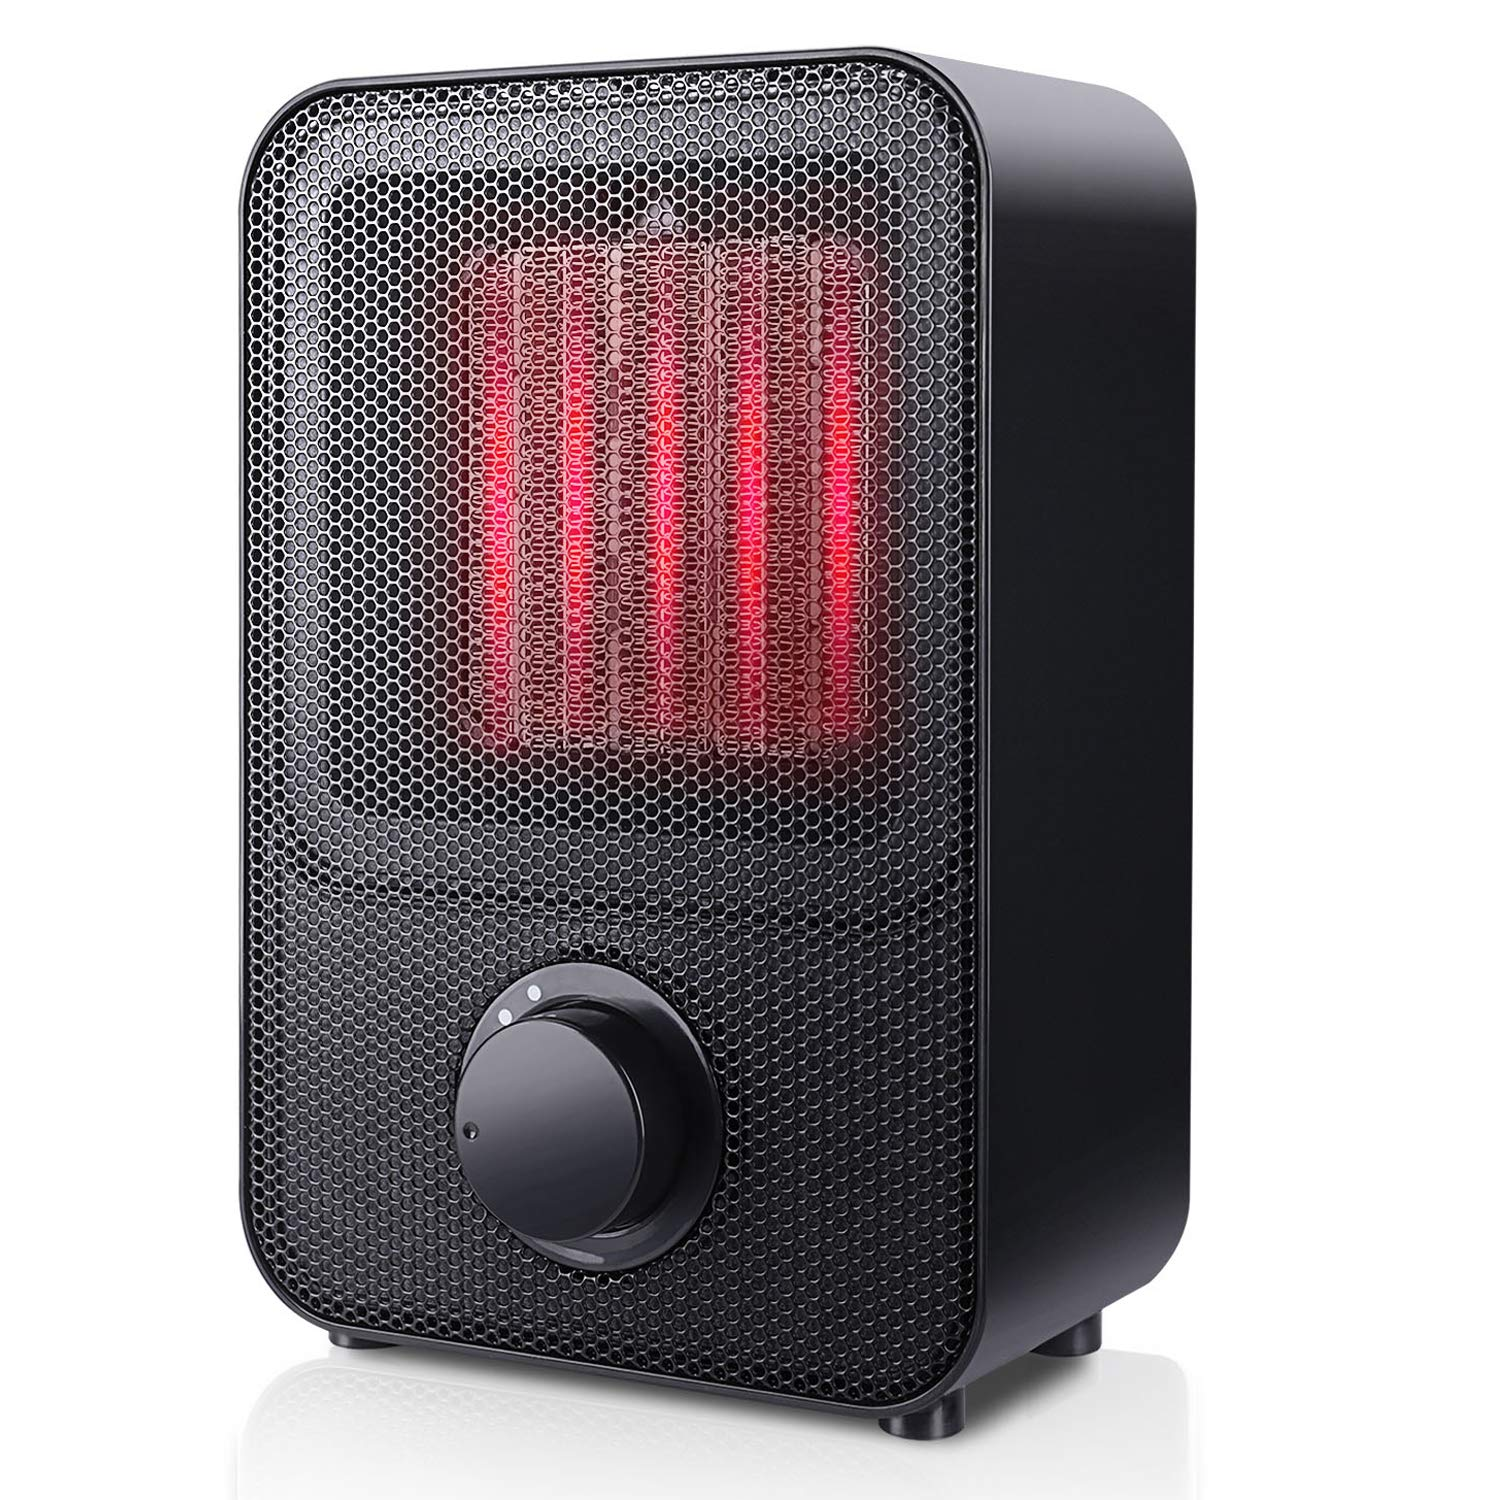 SUNPOLLO Ceramic Space Heater,1500W Small/Mini Personal Electric PTC Heater for Room Office Floor Under Desk, Over-Heat Protection and Tip-Over Protection, ETL Safety